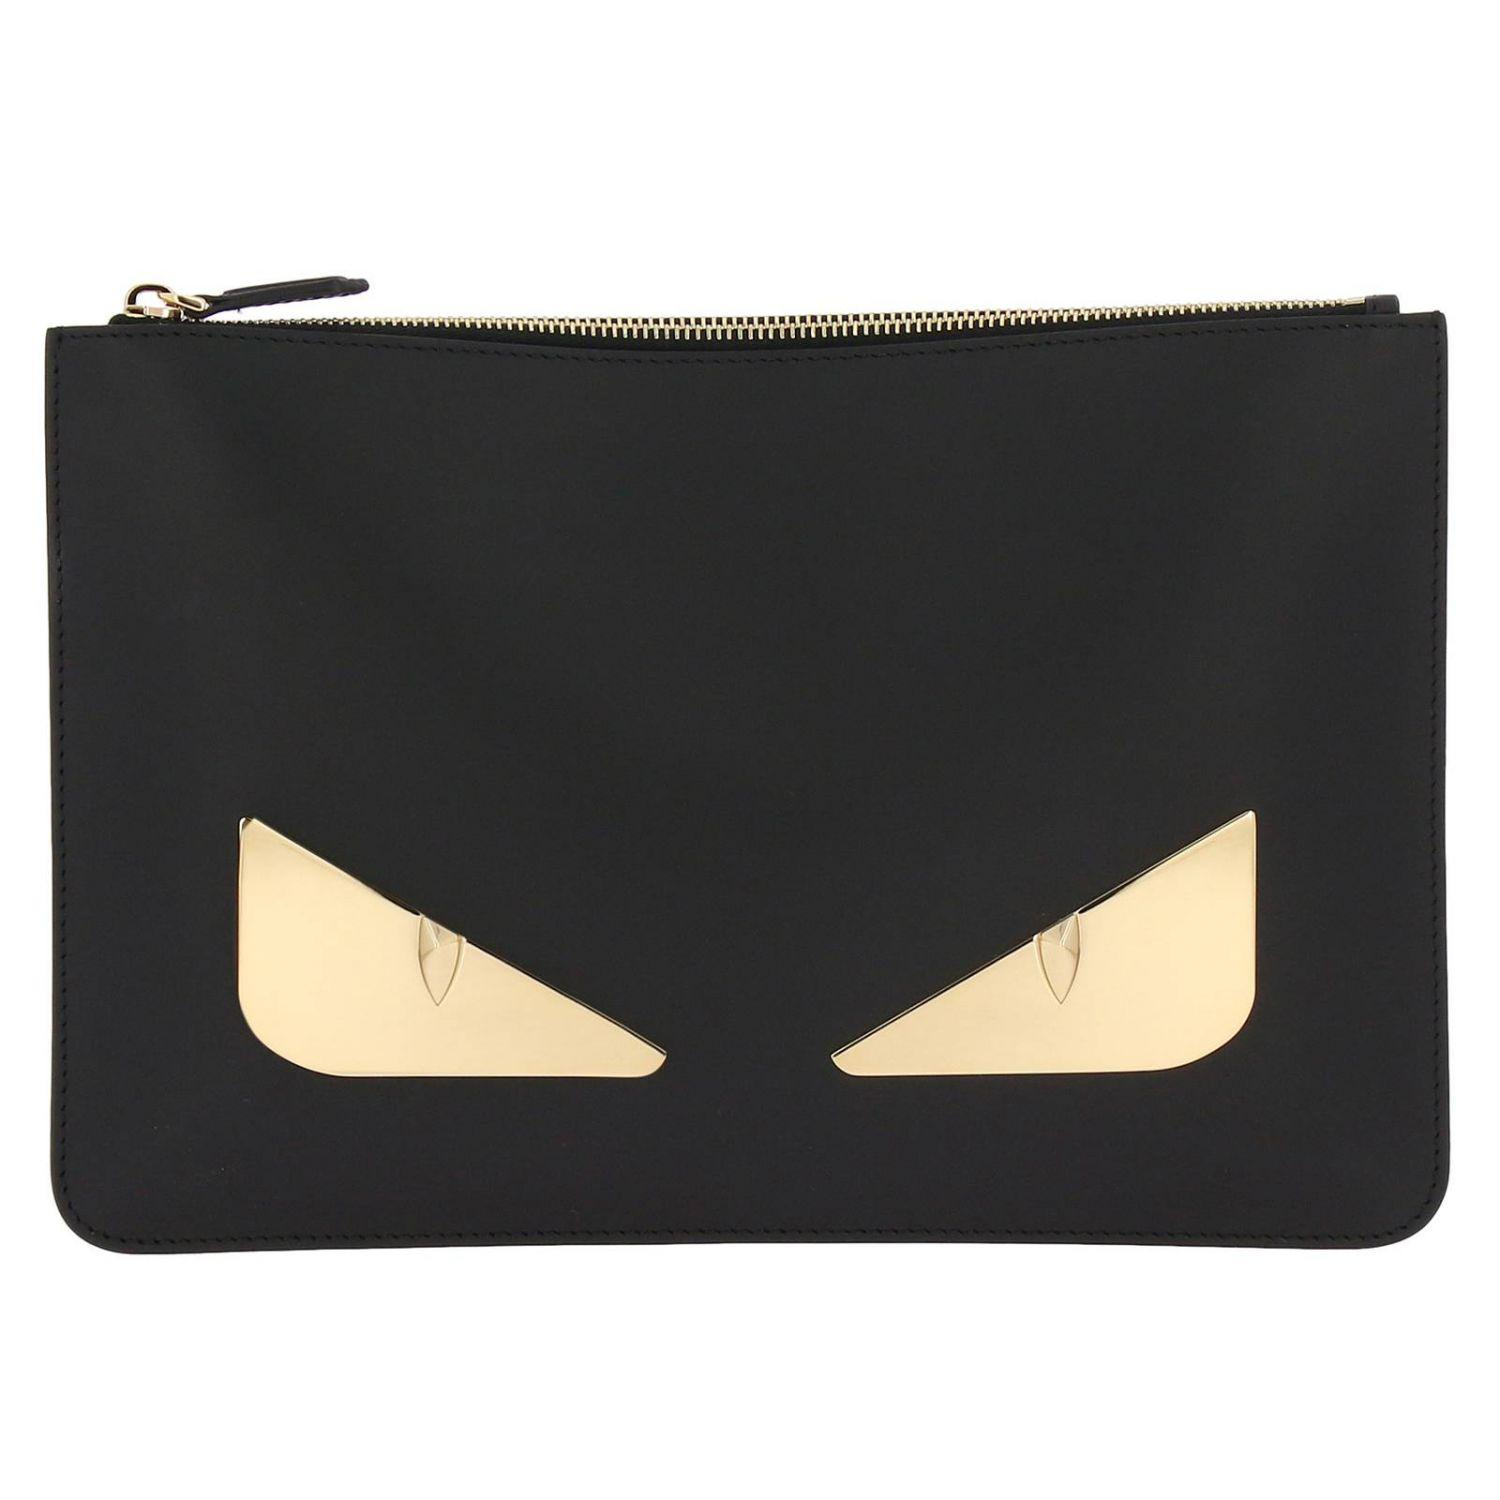 Fendi Monster Eyes Clutch Bag In Smooth Leather With Maxi Metallic ... 9e1ea7384f737